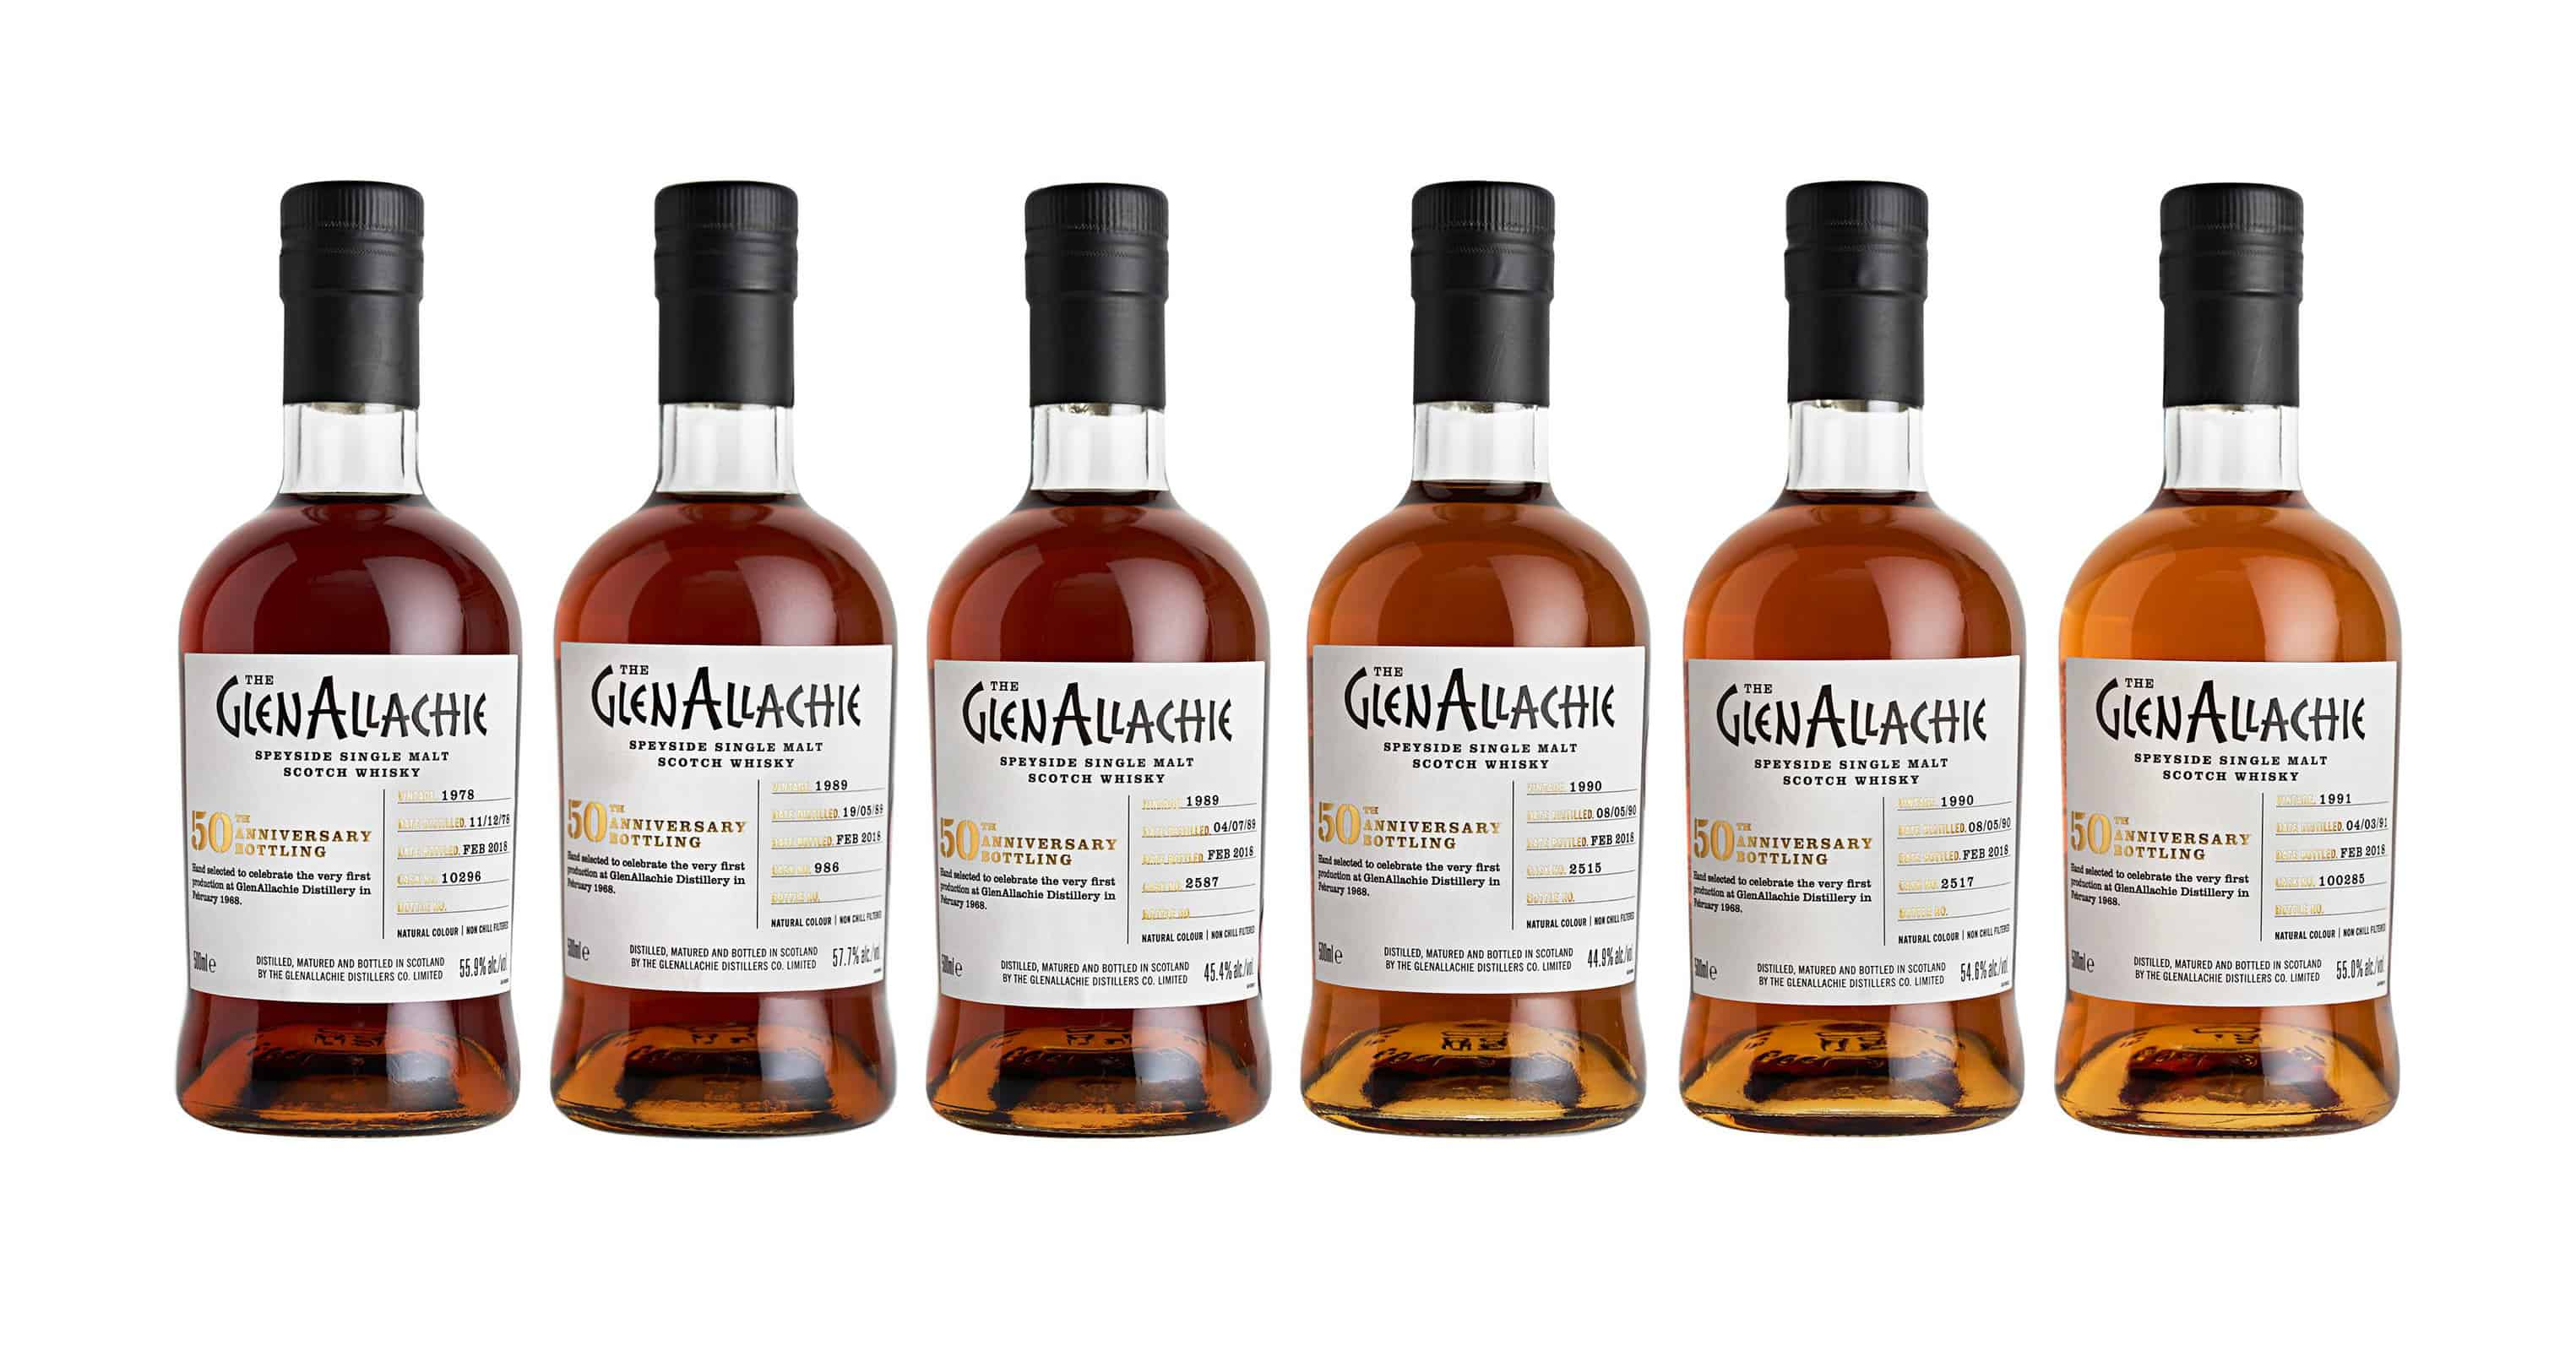 the glenallachie 50th anniversary single casks